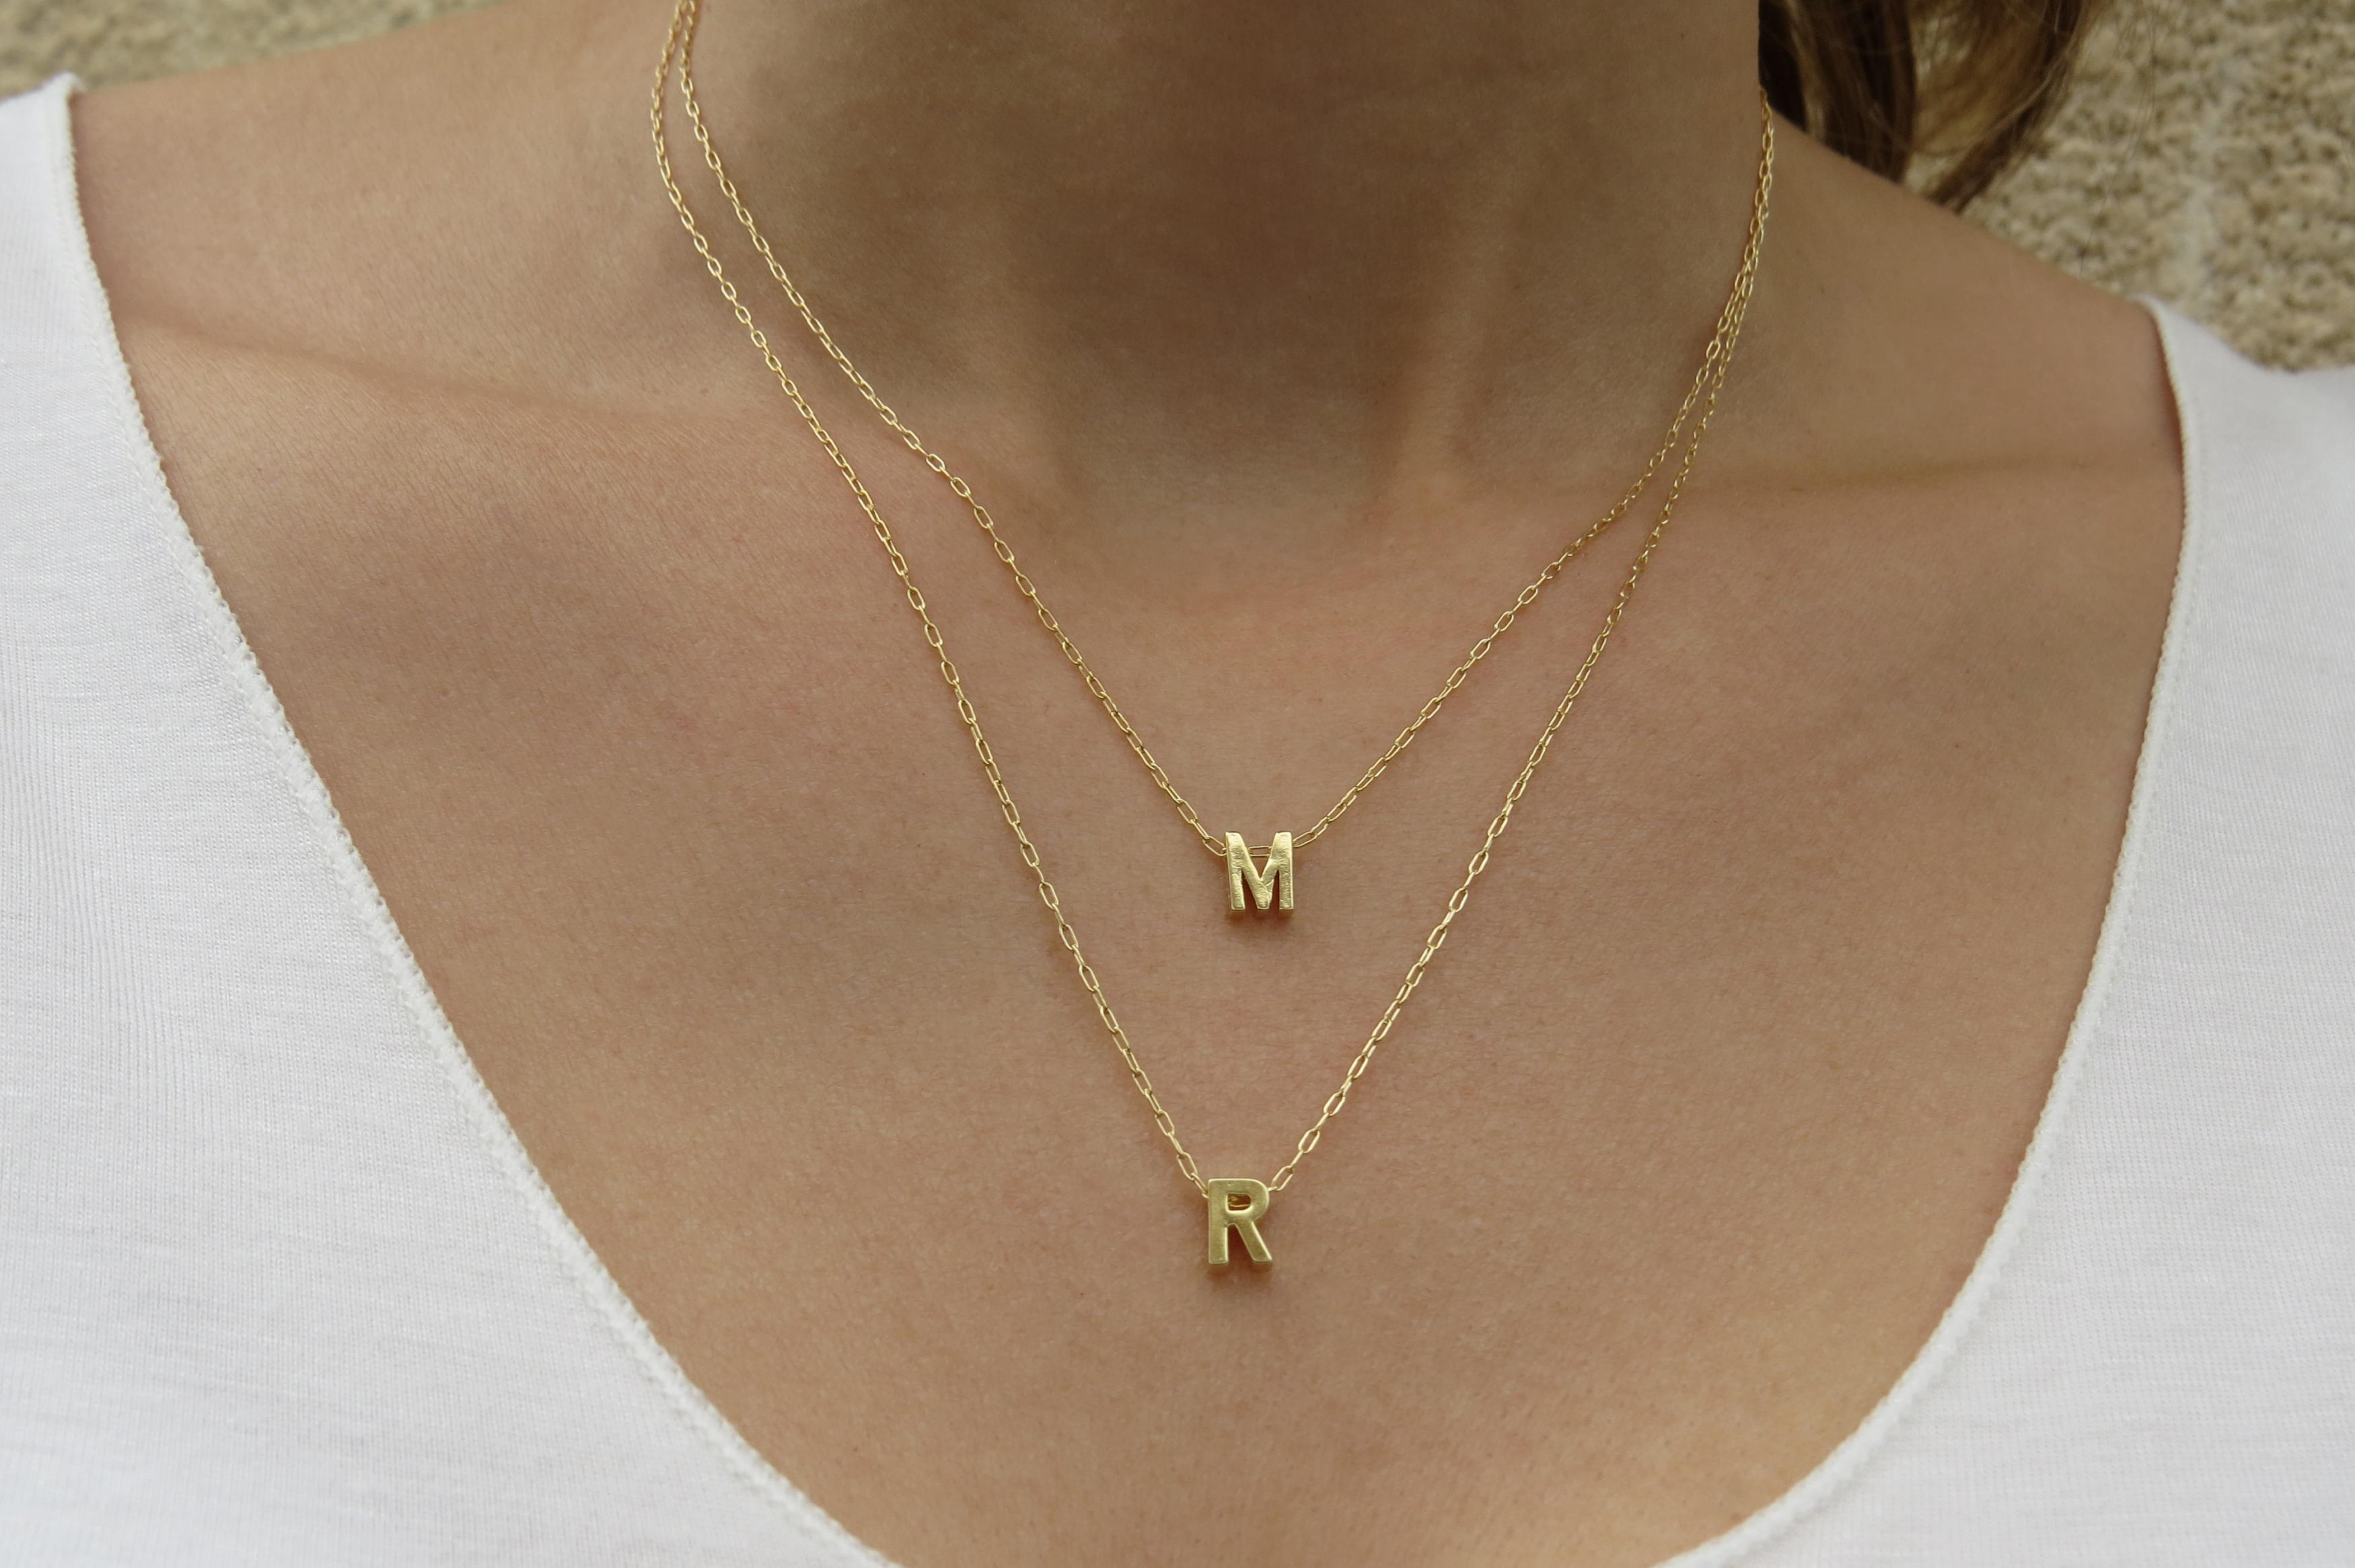 goldfilled initial necklace gold letter necklace gold necklace bridesmaid gift layers necklace personalized necklace initial jewelry